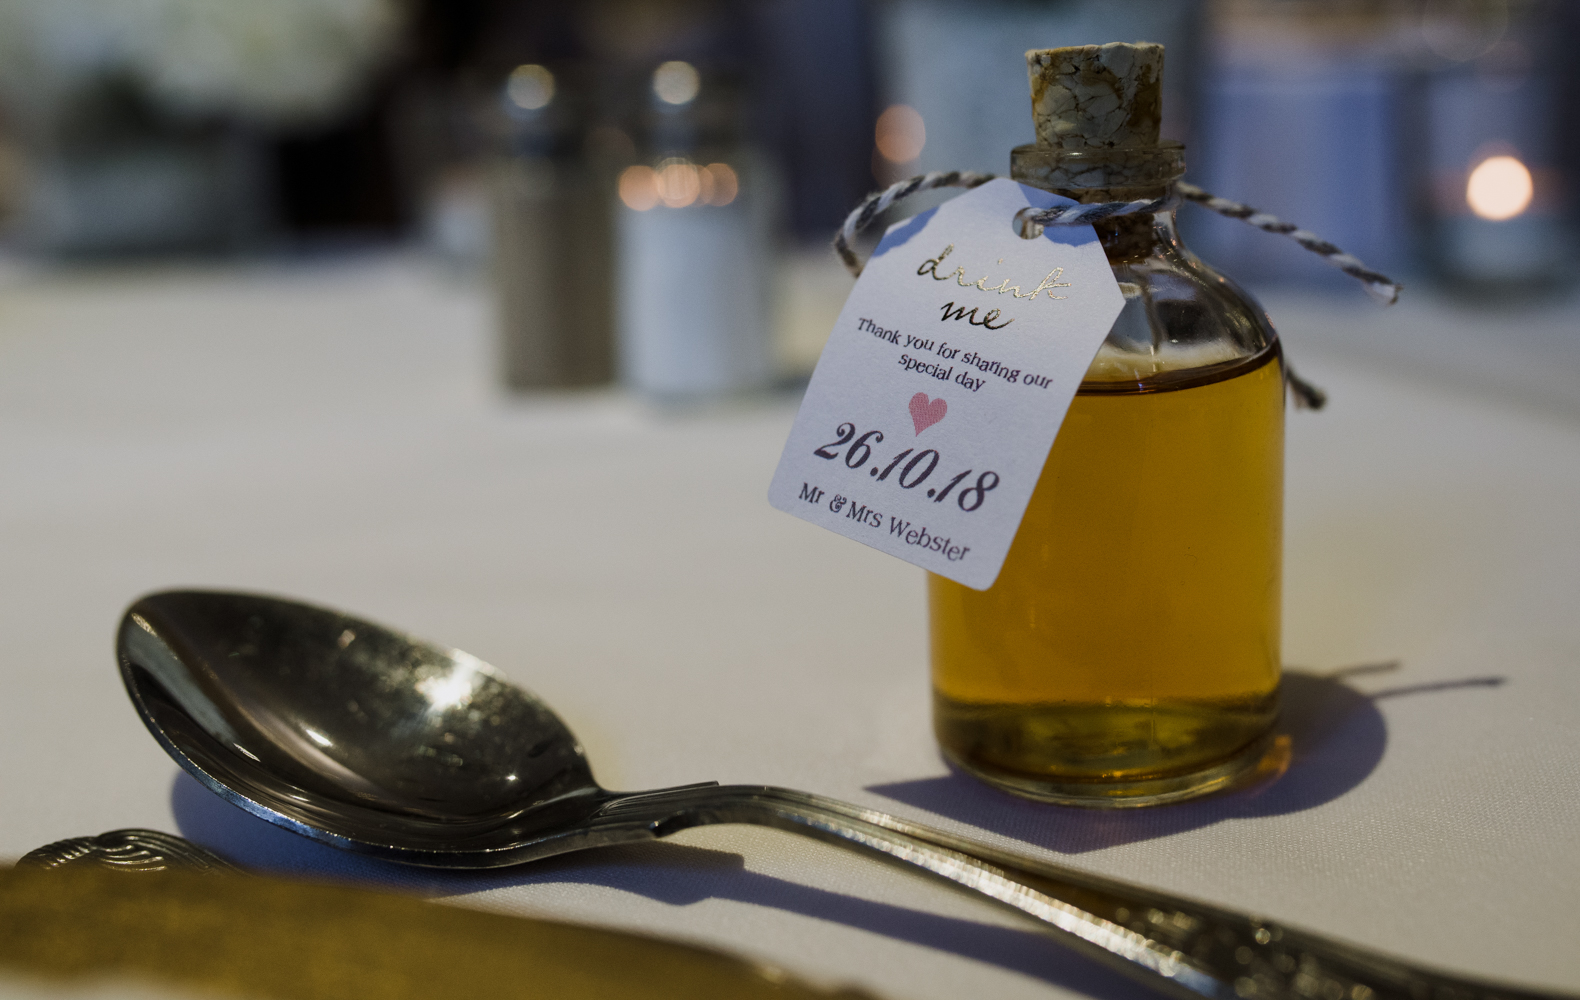 One of the guest wedding favours on the wedding breakfast table